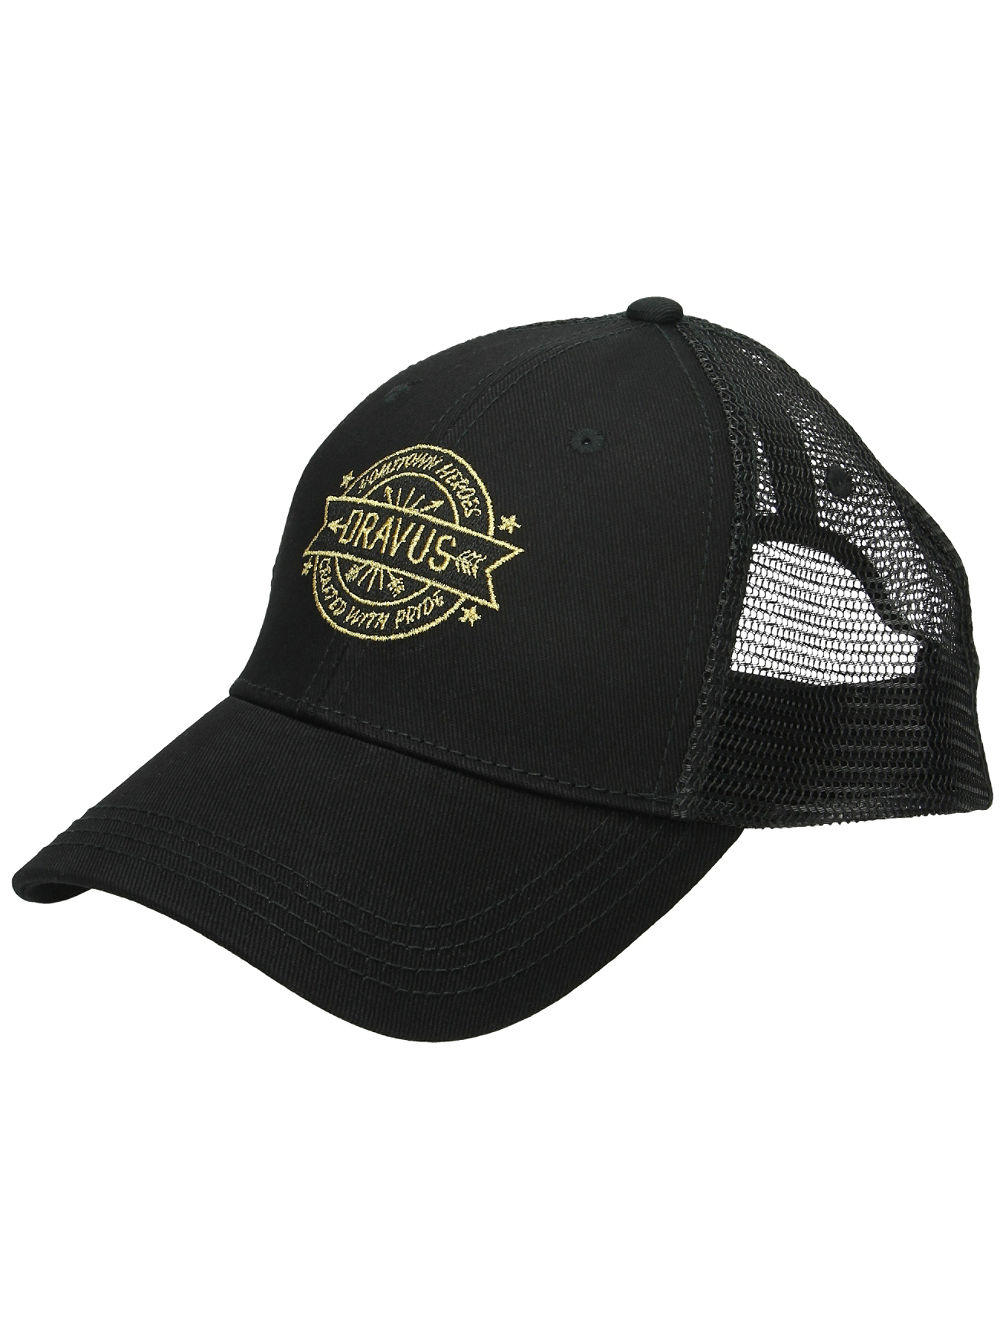 Burch Trucker Cap